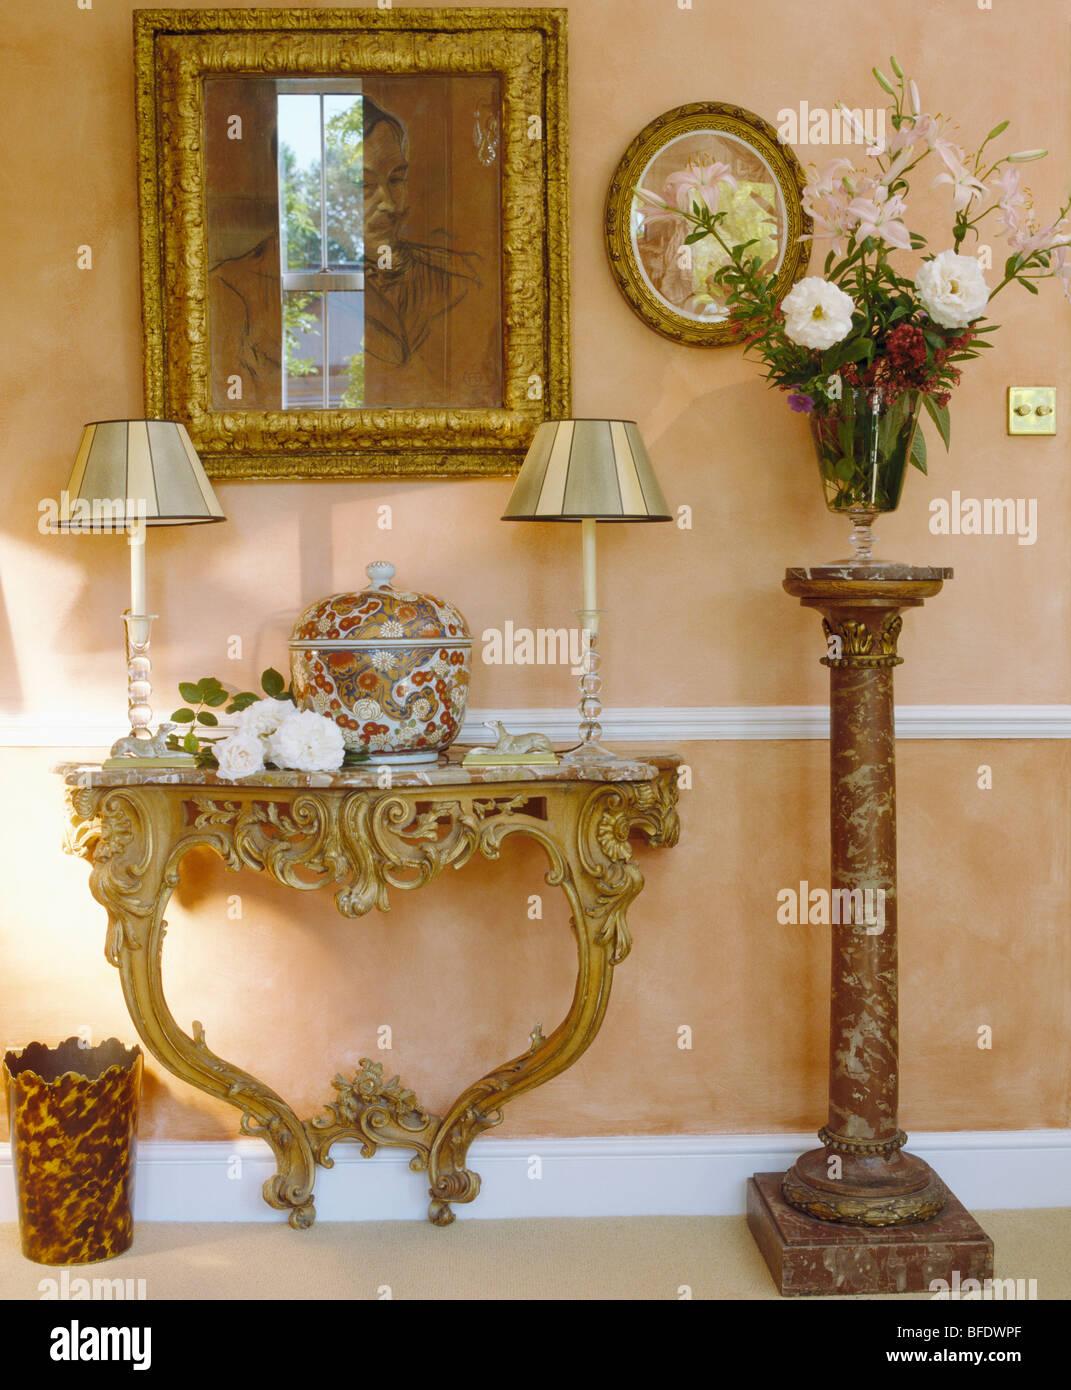 Gilt mirror above ornate baroque console table in traditional cream stock photo royalty free - Ornate hall table ...